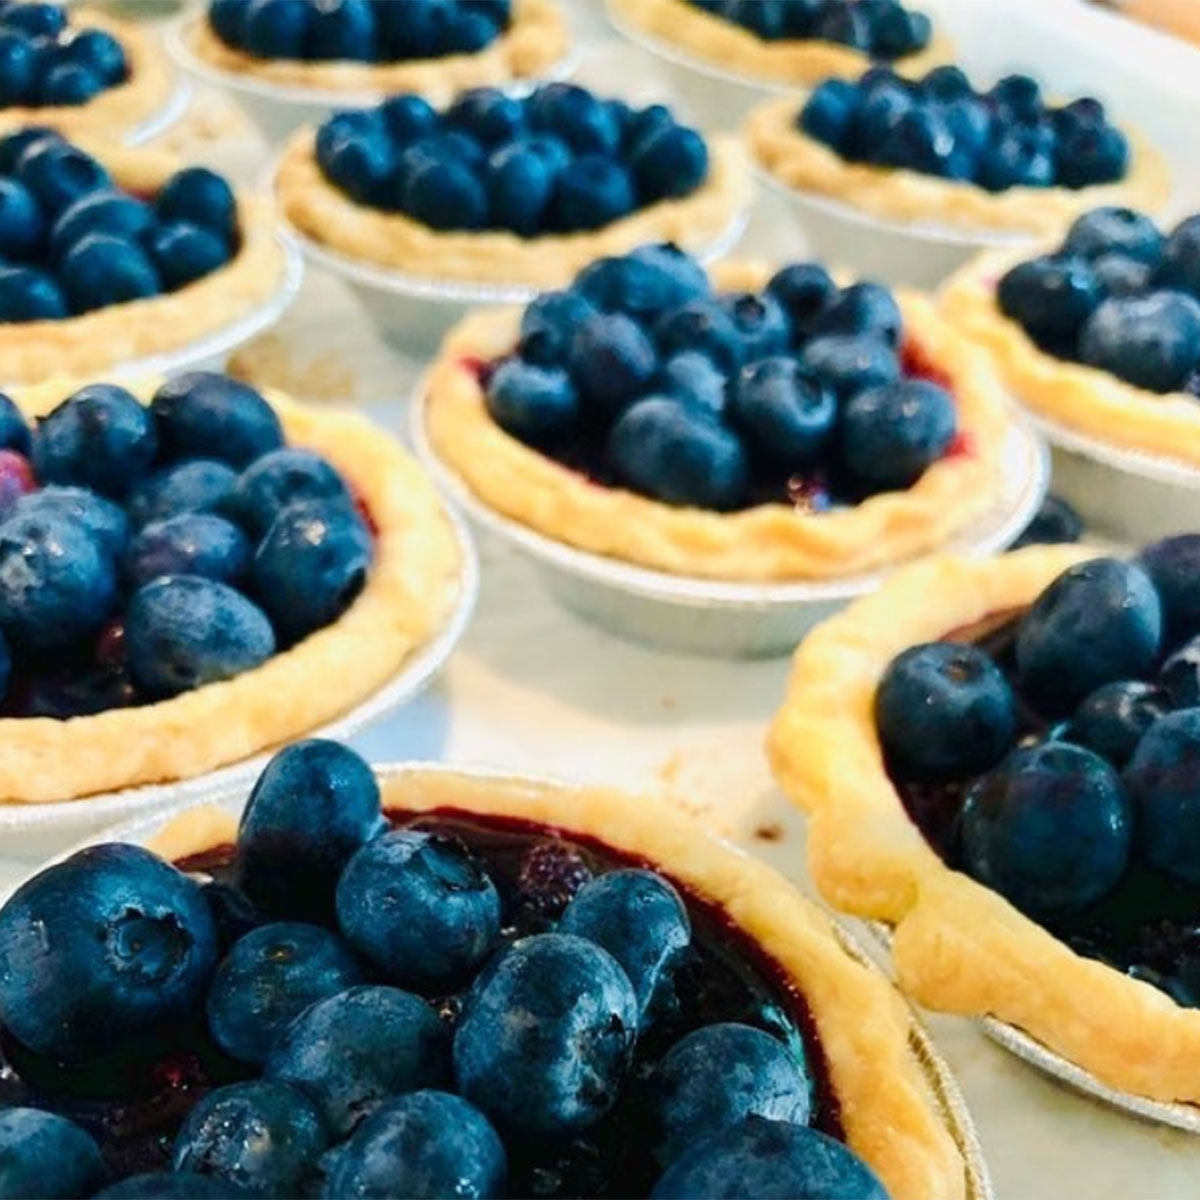 Maine - Hello Good Pie Bakery and Gourmet Kitchen, Belgrade LakesBlueberries and Maine go hand in hand, so expect to find some blueberry pie at Hello, Good Pie in Belgrade Lakes. Their pies are made from scratch, including the fruit fillings, curds and caramel. All this berry talk is giving us an urge to bake up some tasty blueberry treats!Photo courtesy @HELLOGOODPIECO/INSTAGRAM